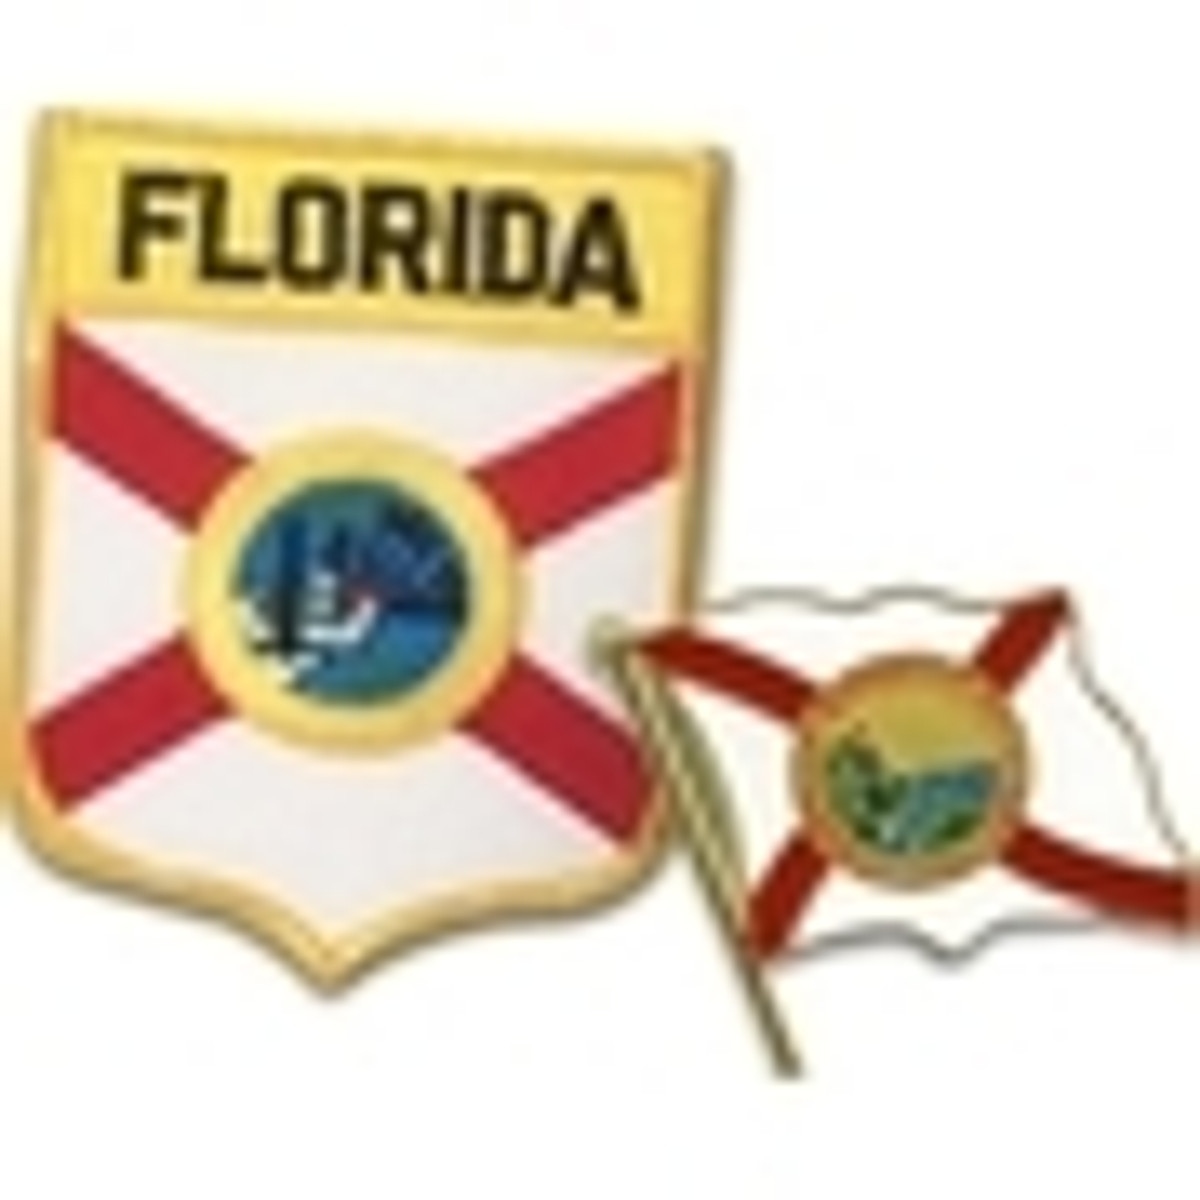 Florida Pins, Patches & Decals